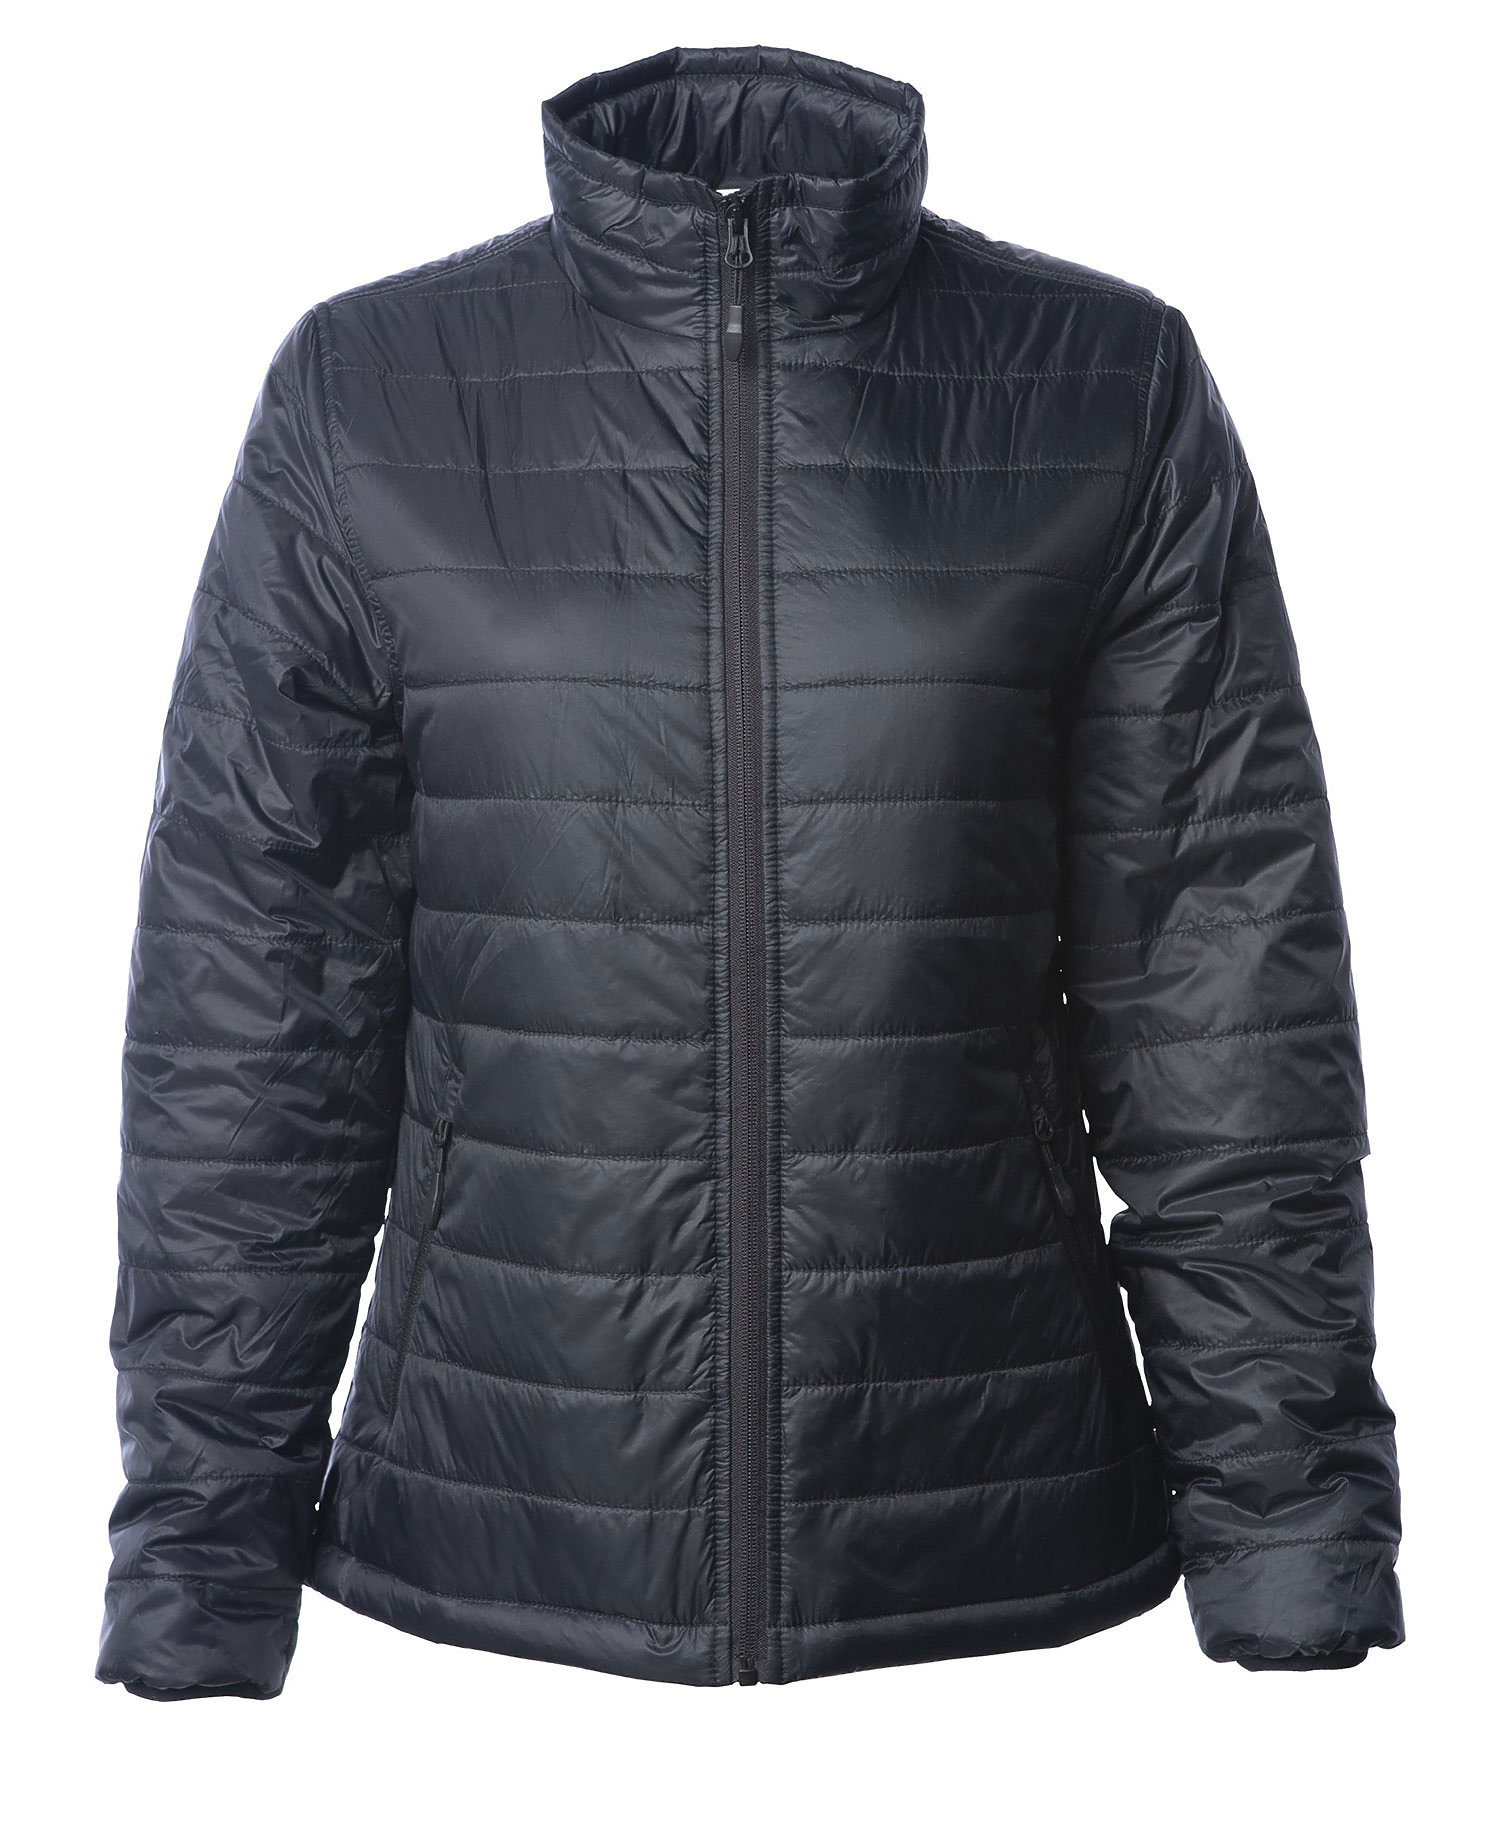 Independent Trading Co. EXP200PFZ - Women's Puffer Jacket